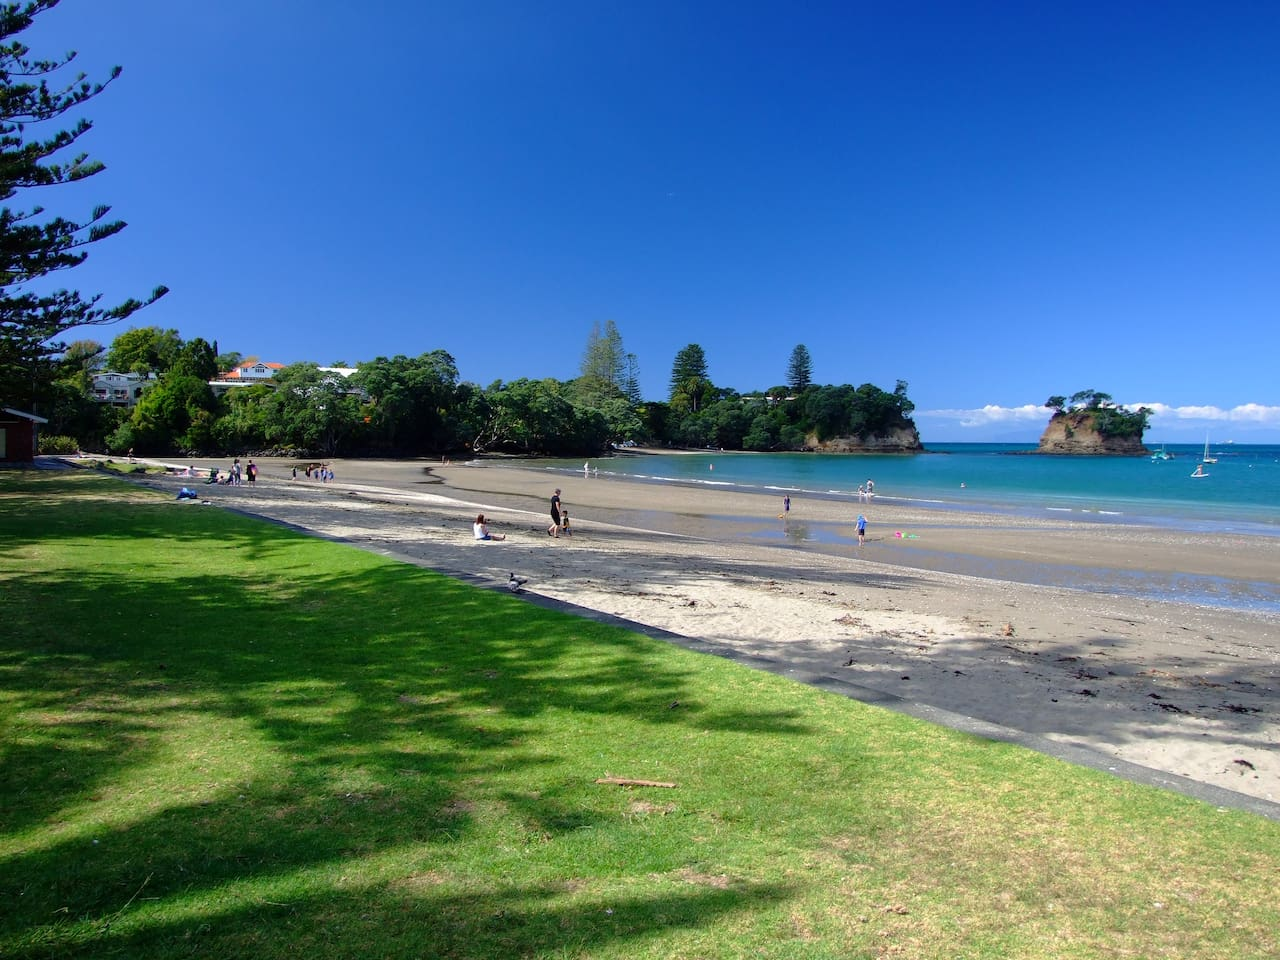 Great beach for a picnic or just hang out and watch the world go by, amazing sunsets to be seen from here, only minutes stroll away.